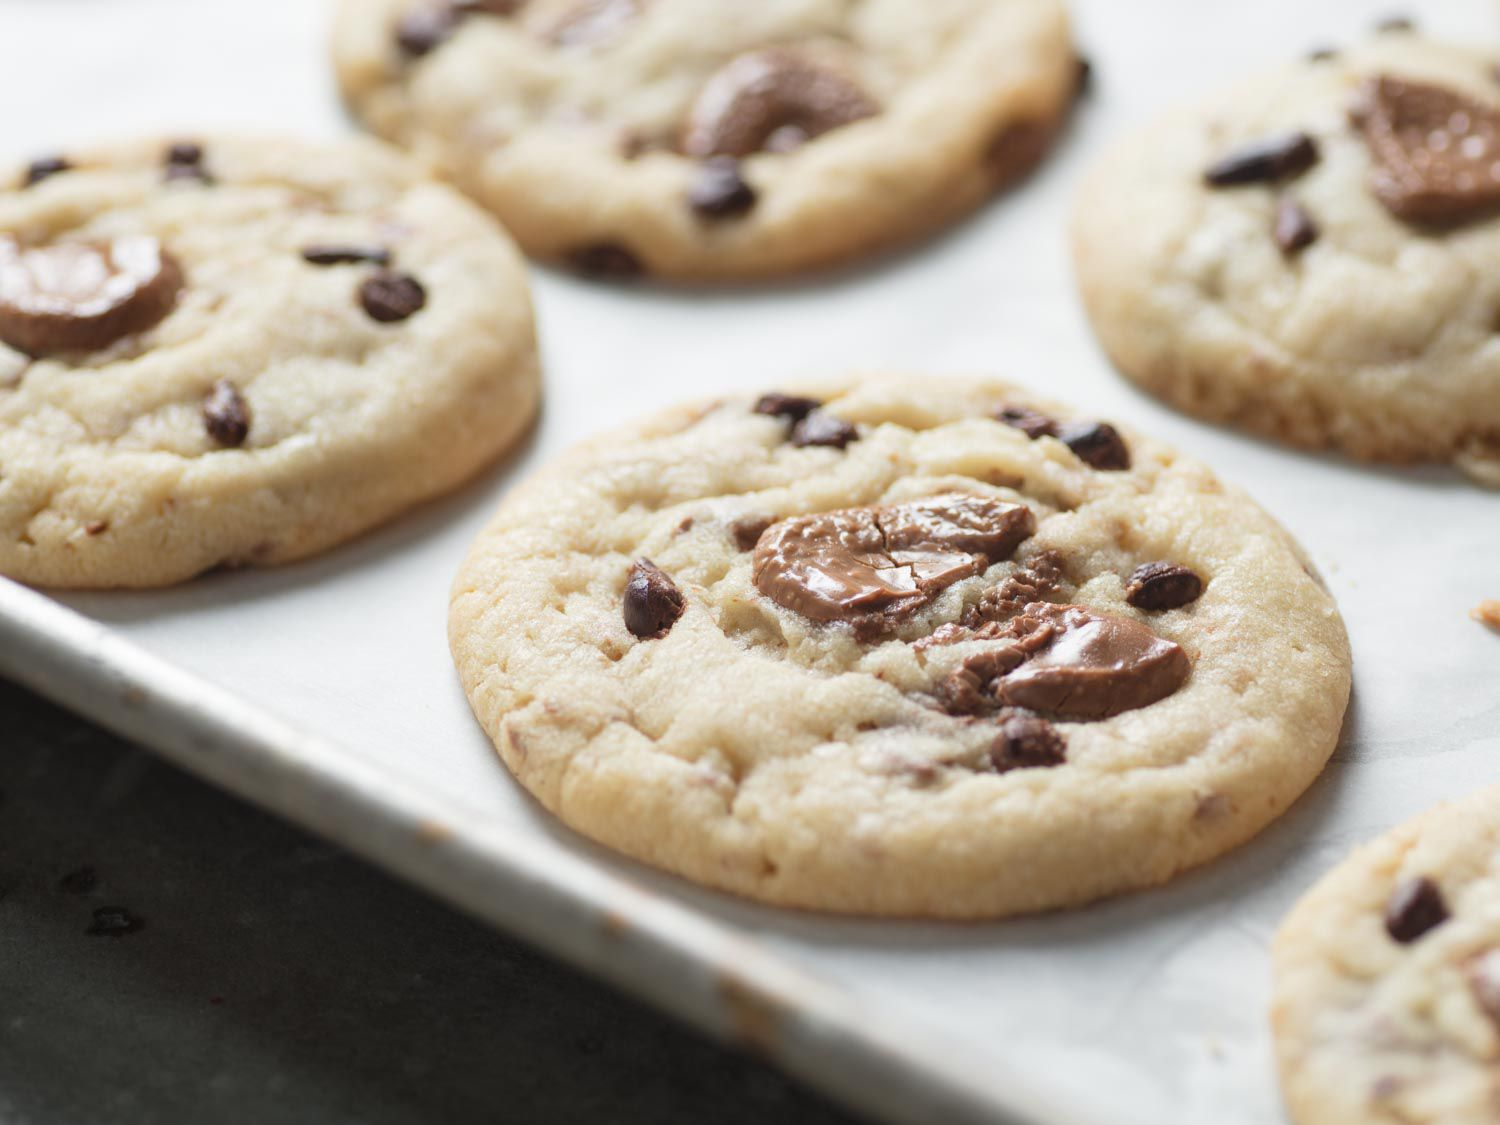 20170727-cocoa-butter-sugar-cookies-vicky-wasik-16.jpg